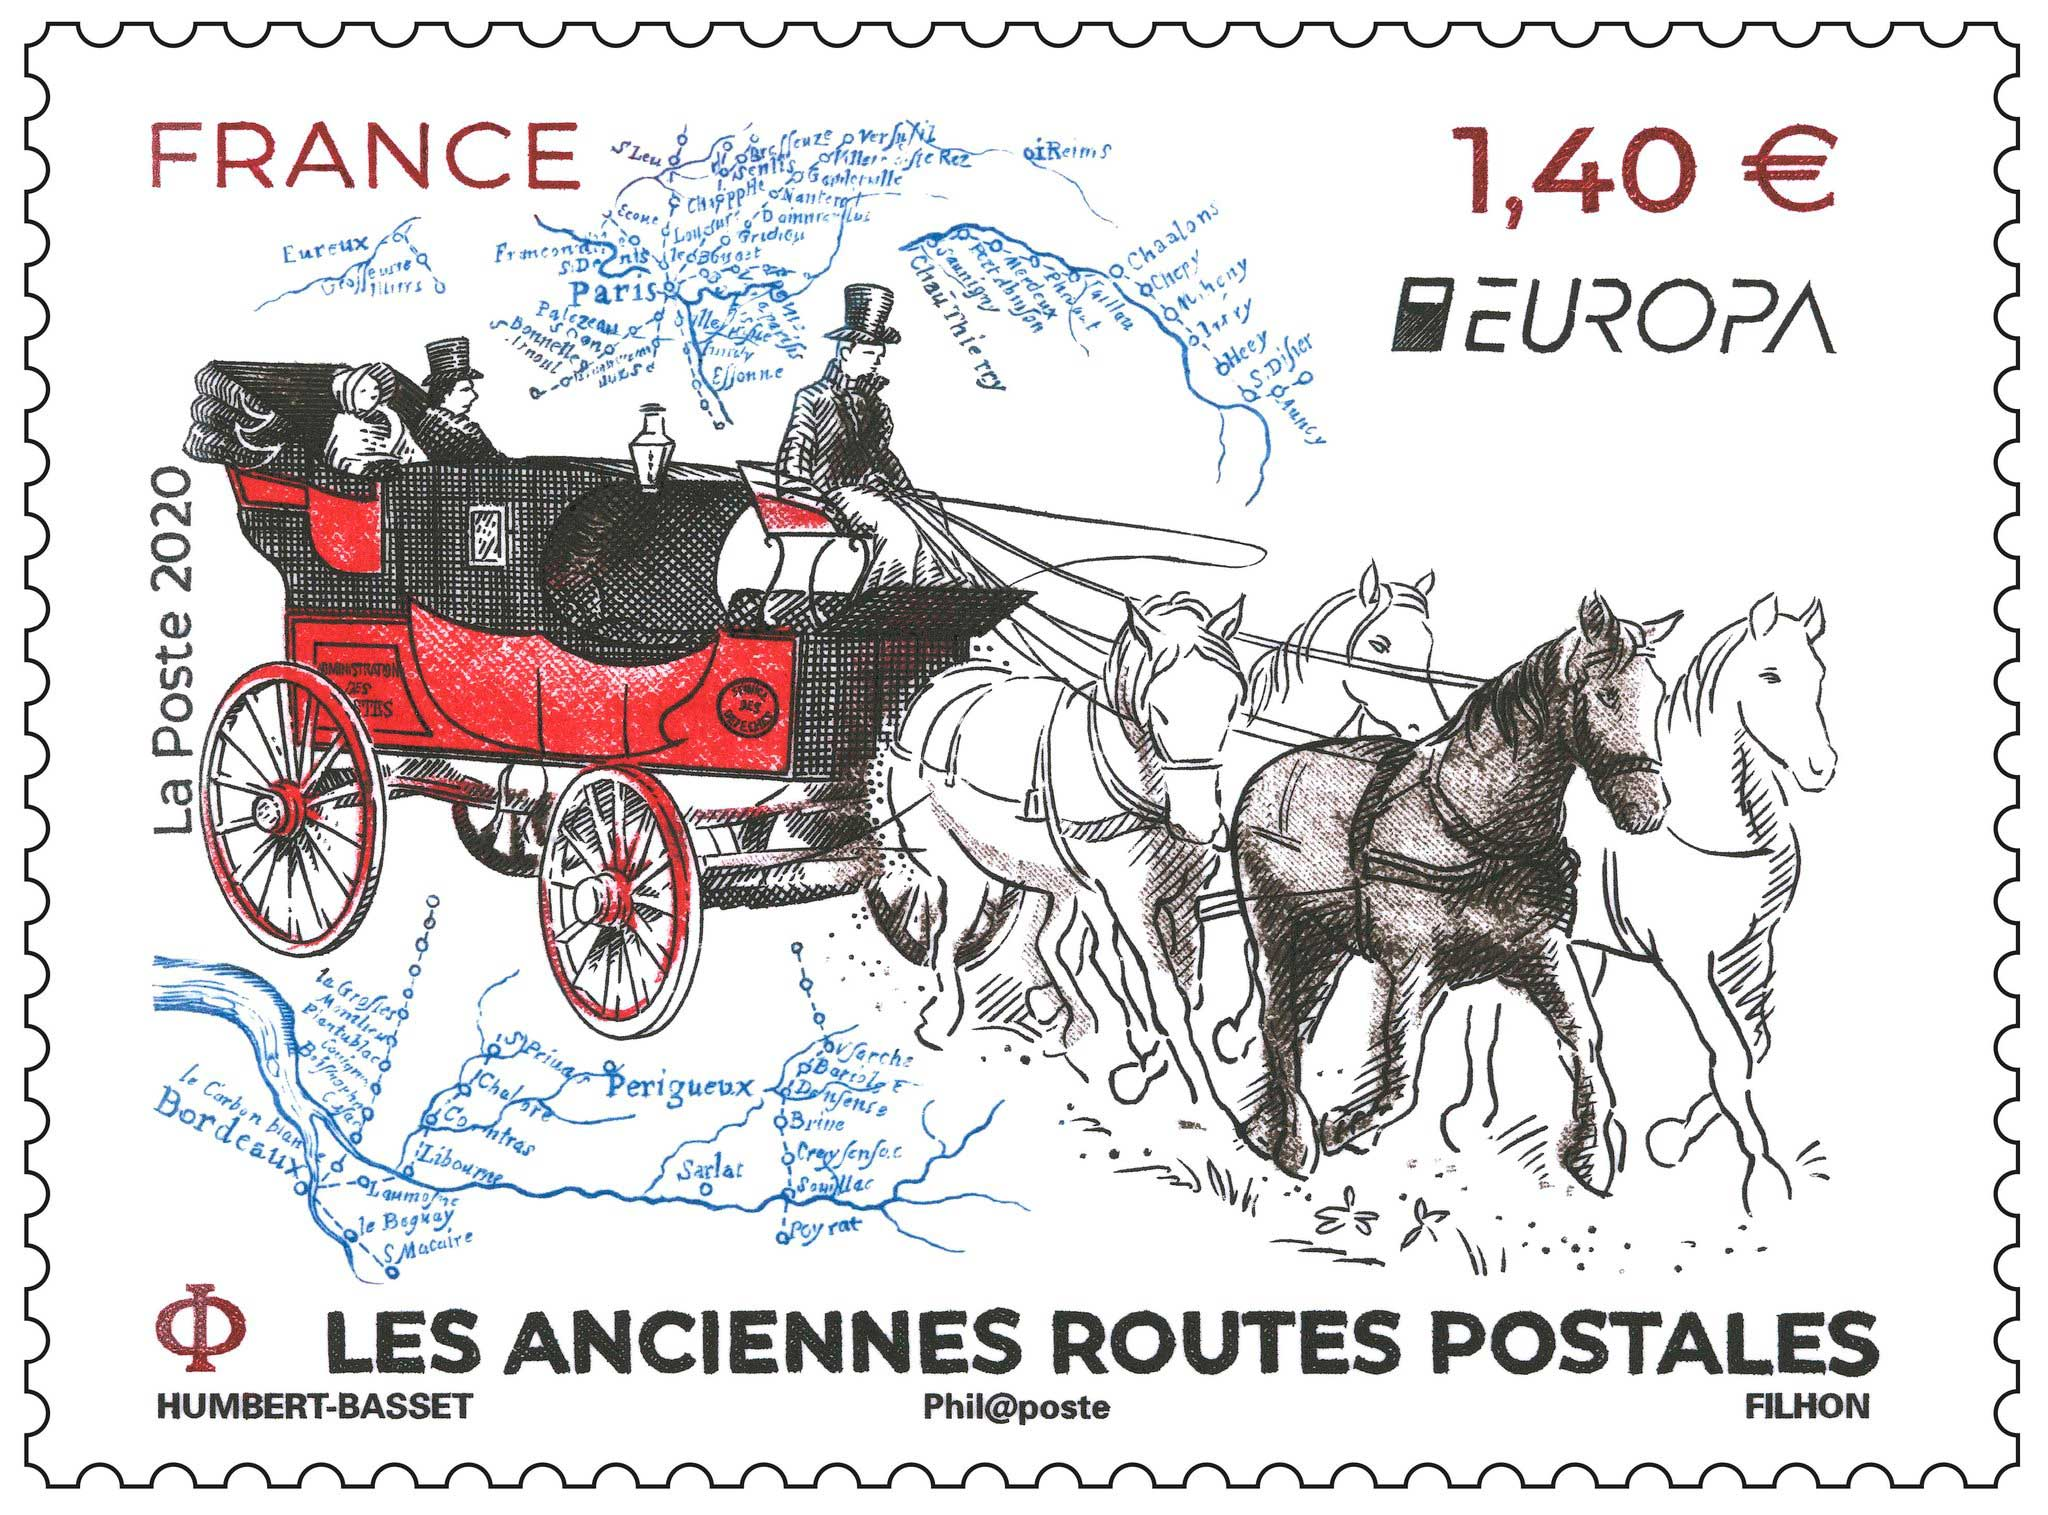 Timbre : EUROPA LES ANCIENNES ROUTES POSTALES